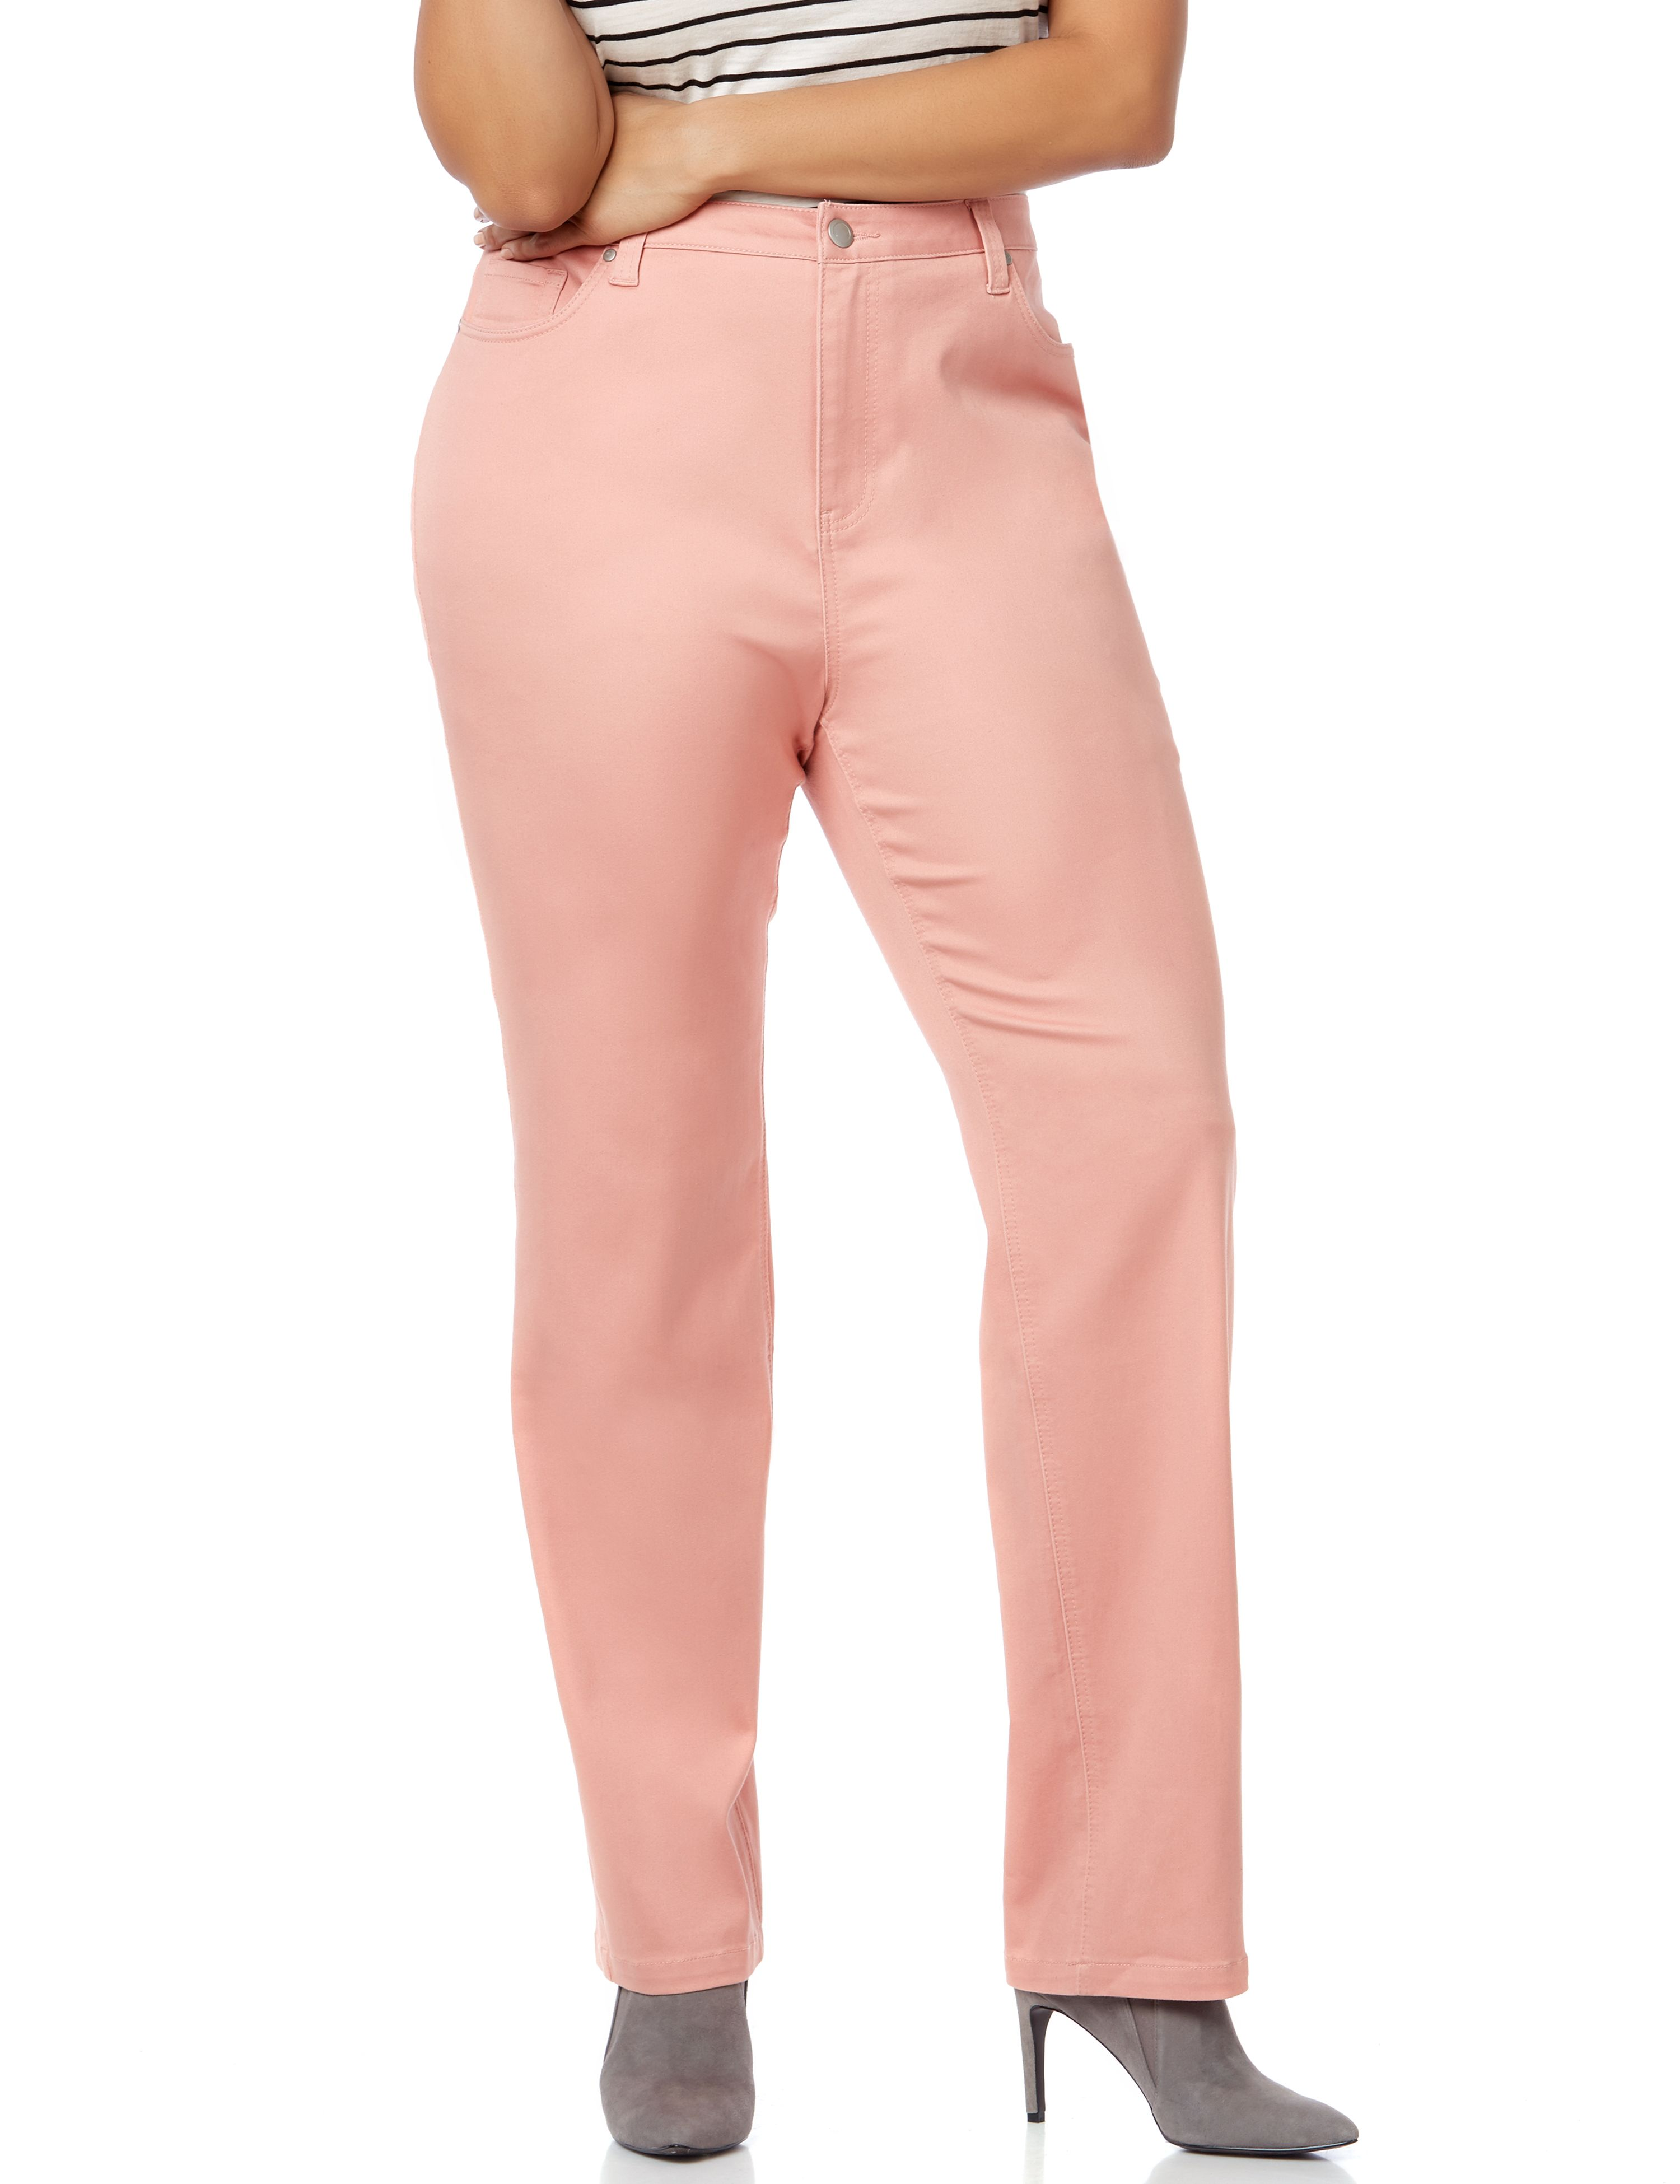 Modern Sateen Stretch Pant Done MP-300098271